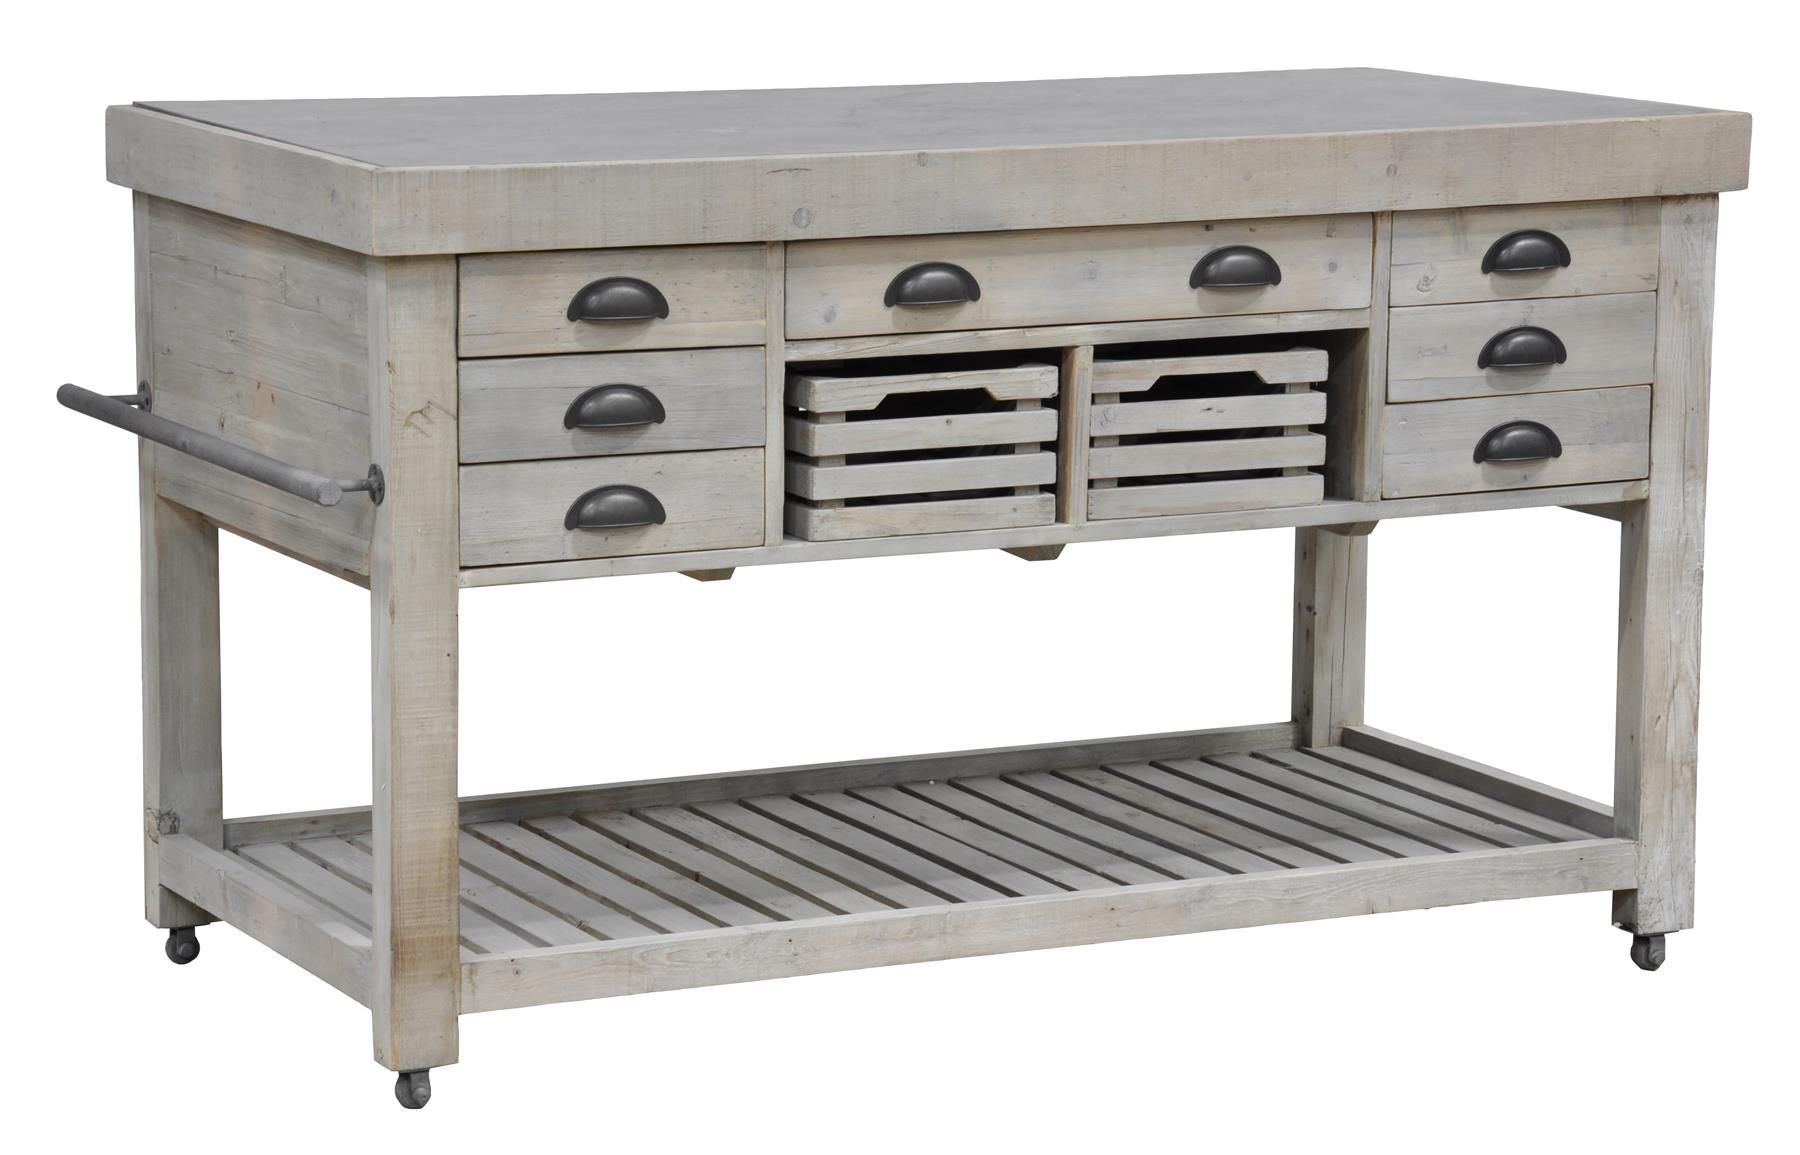 Classic Home Avery One of a Kind Natural Grey Kitchen Island - Item Number: 52002071